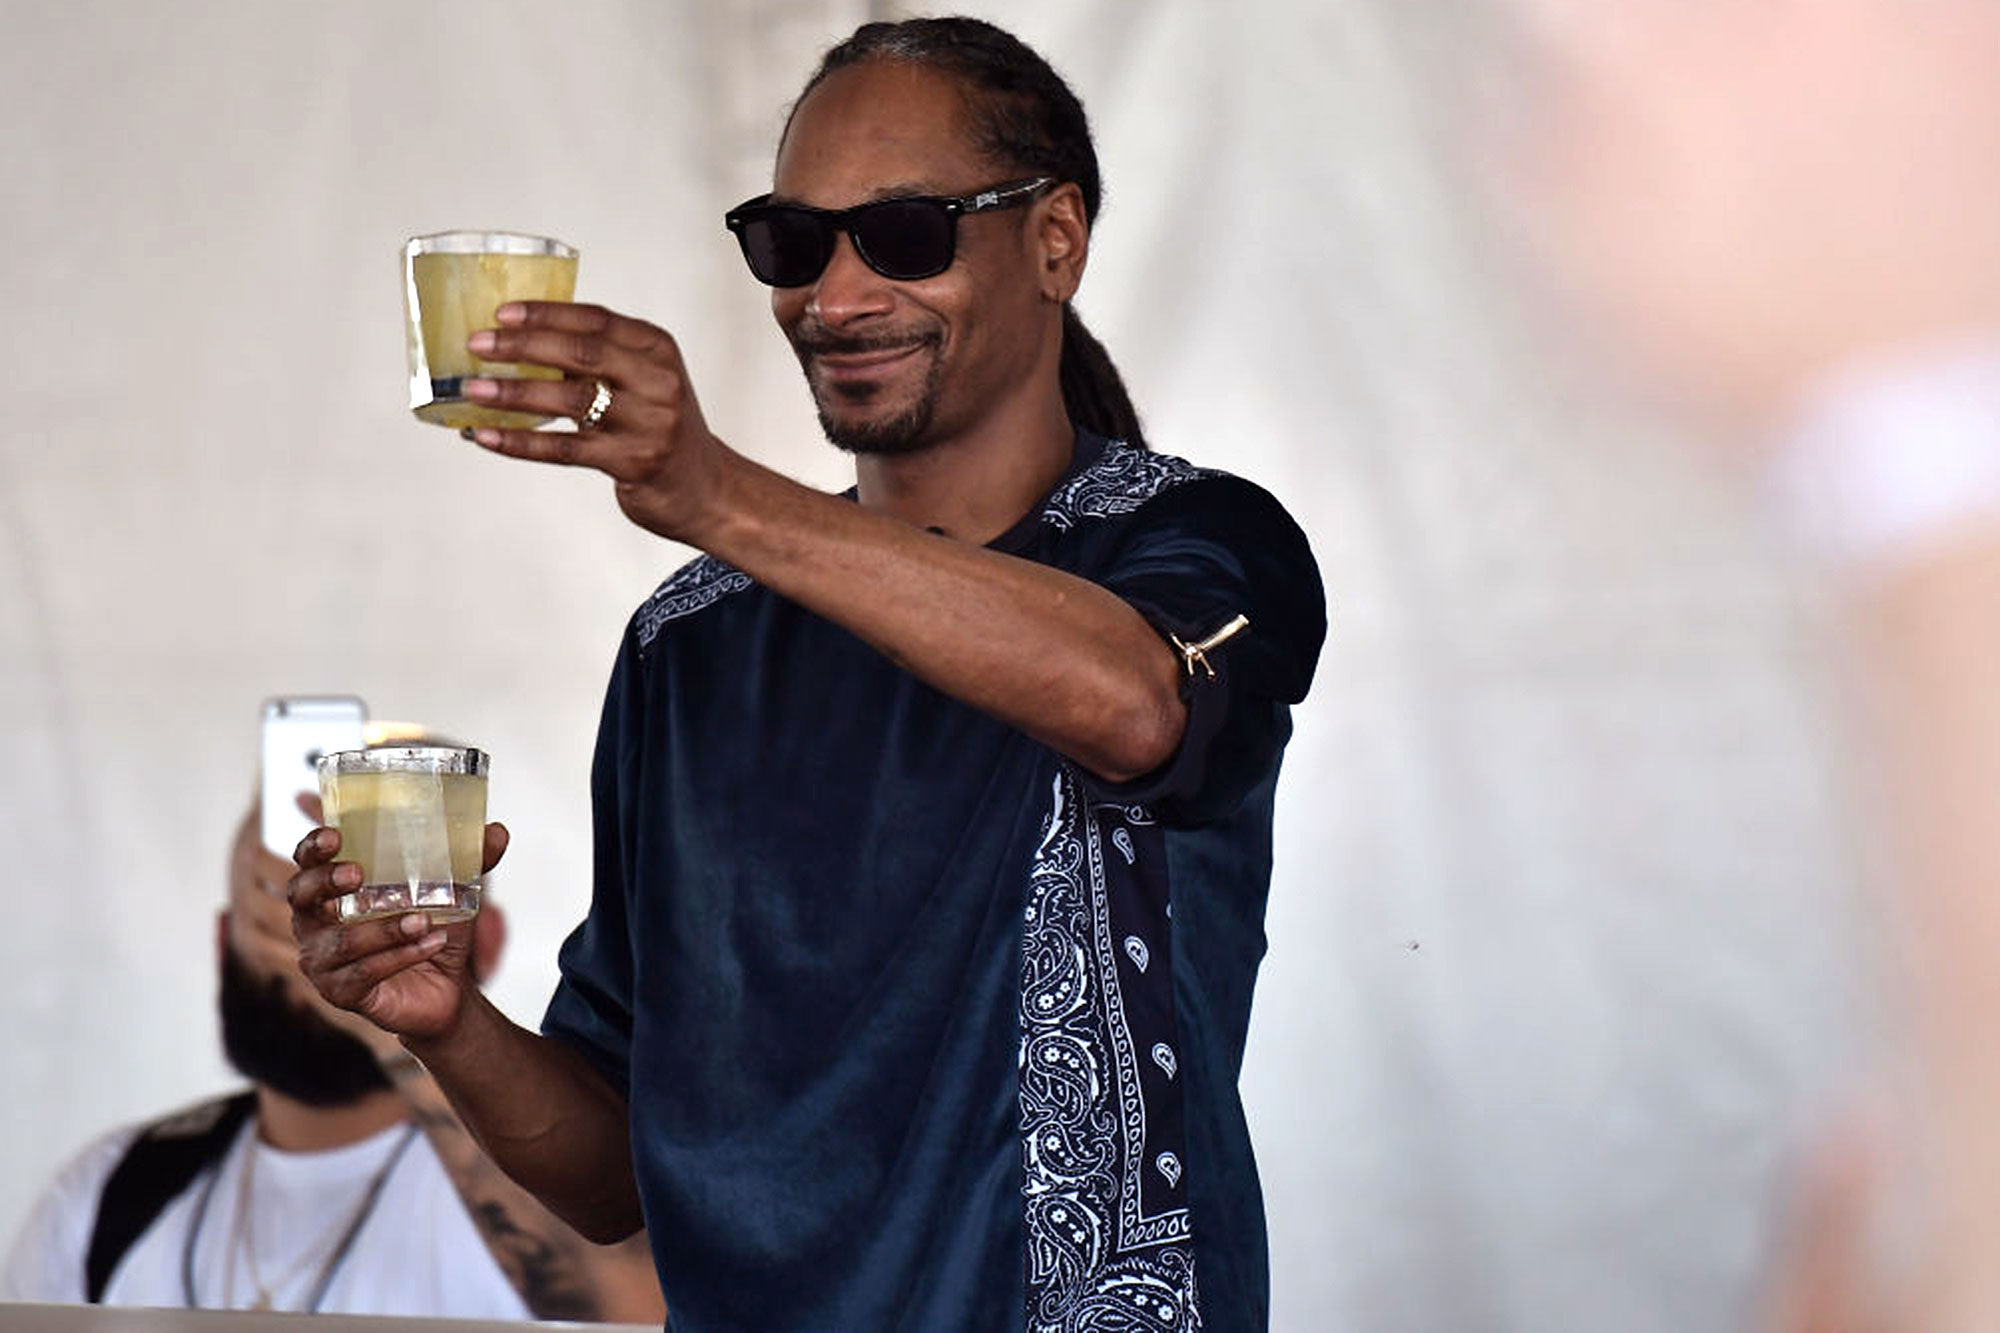 MIAMI BEACH, FL - FEBRUARY 25: Snoop Dogg attends Goya Foods' Grand Tasting Village Featuring Mastercard Grand Tasting Tents & KitchenAid Culinary Demonstrations on February 25, 2017 in Miami Beach, Florida. (Photo by Gustavo Caballero/Getty Images for SOBEWFF)